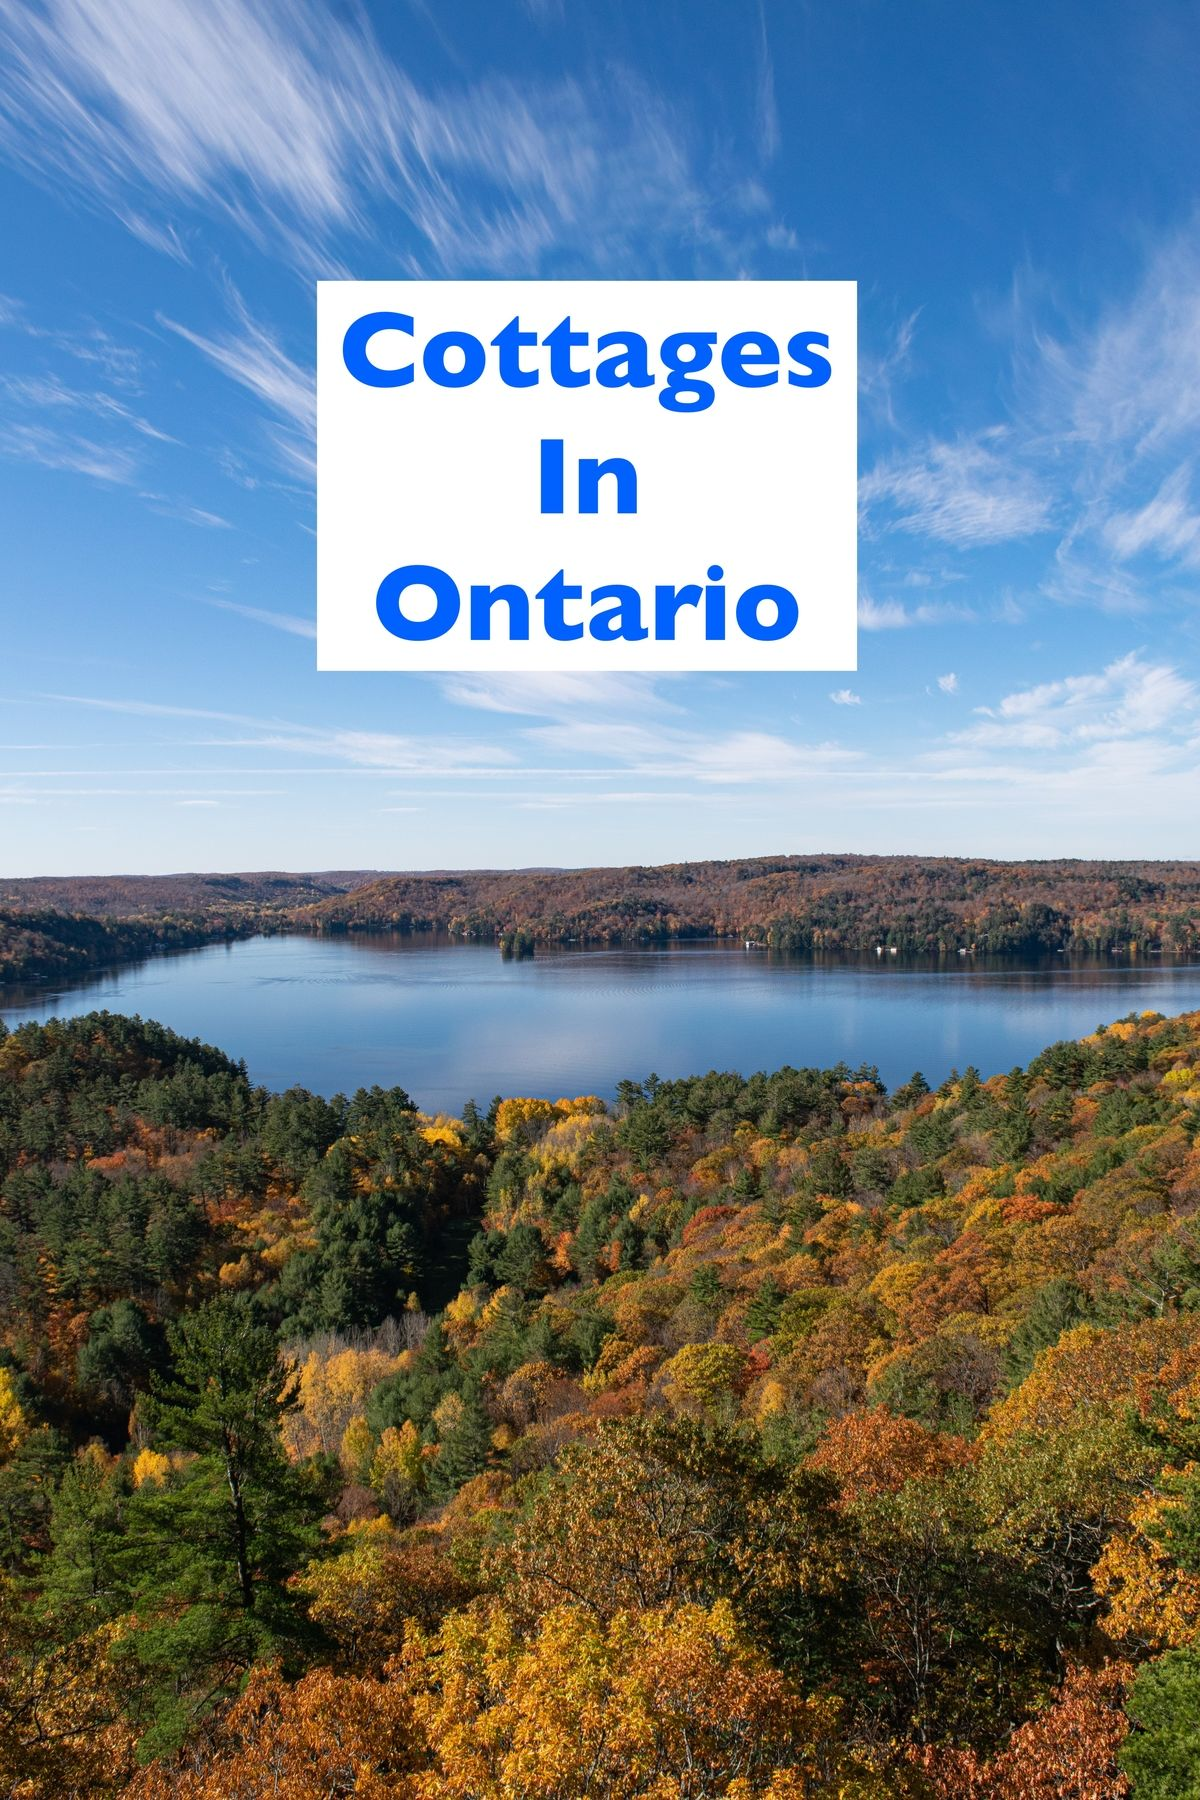 Cottages in Ontario